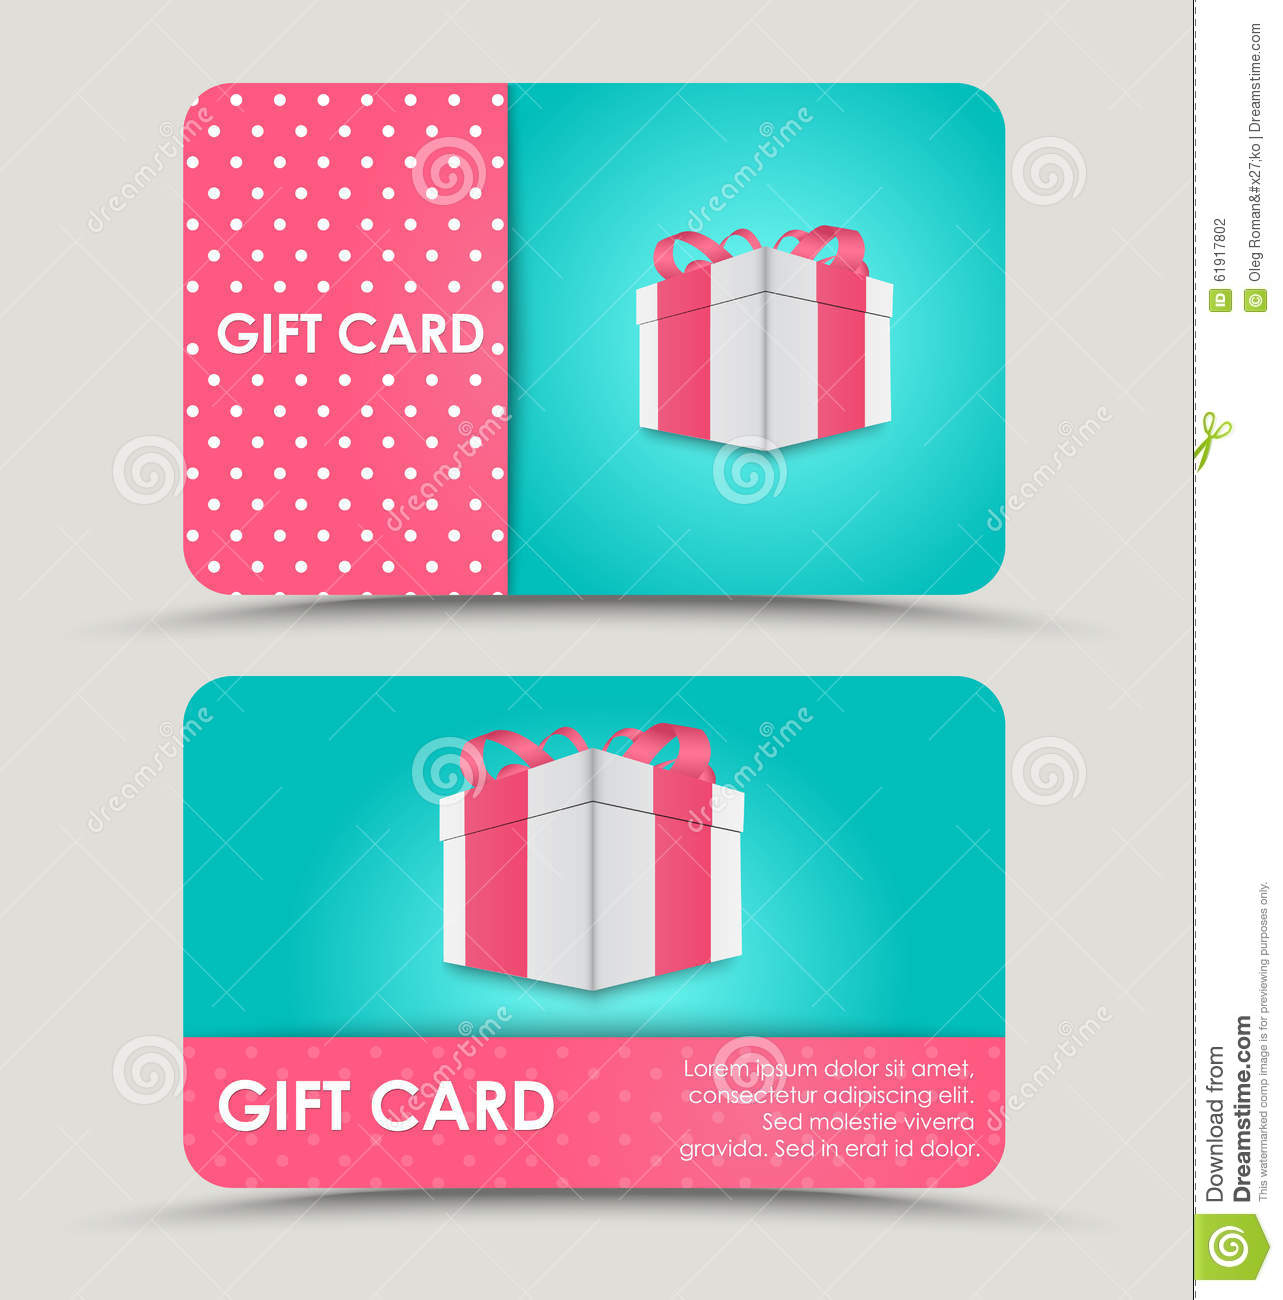 Design Gift Cards Stock Vector